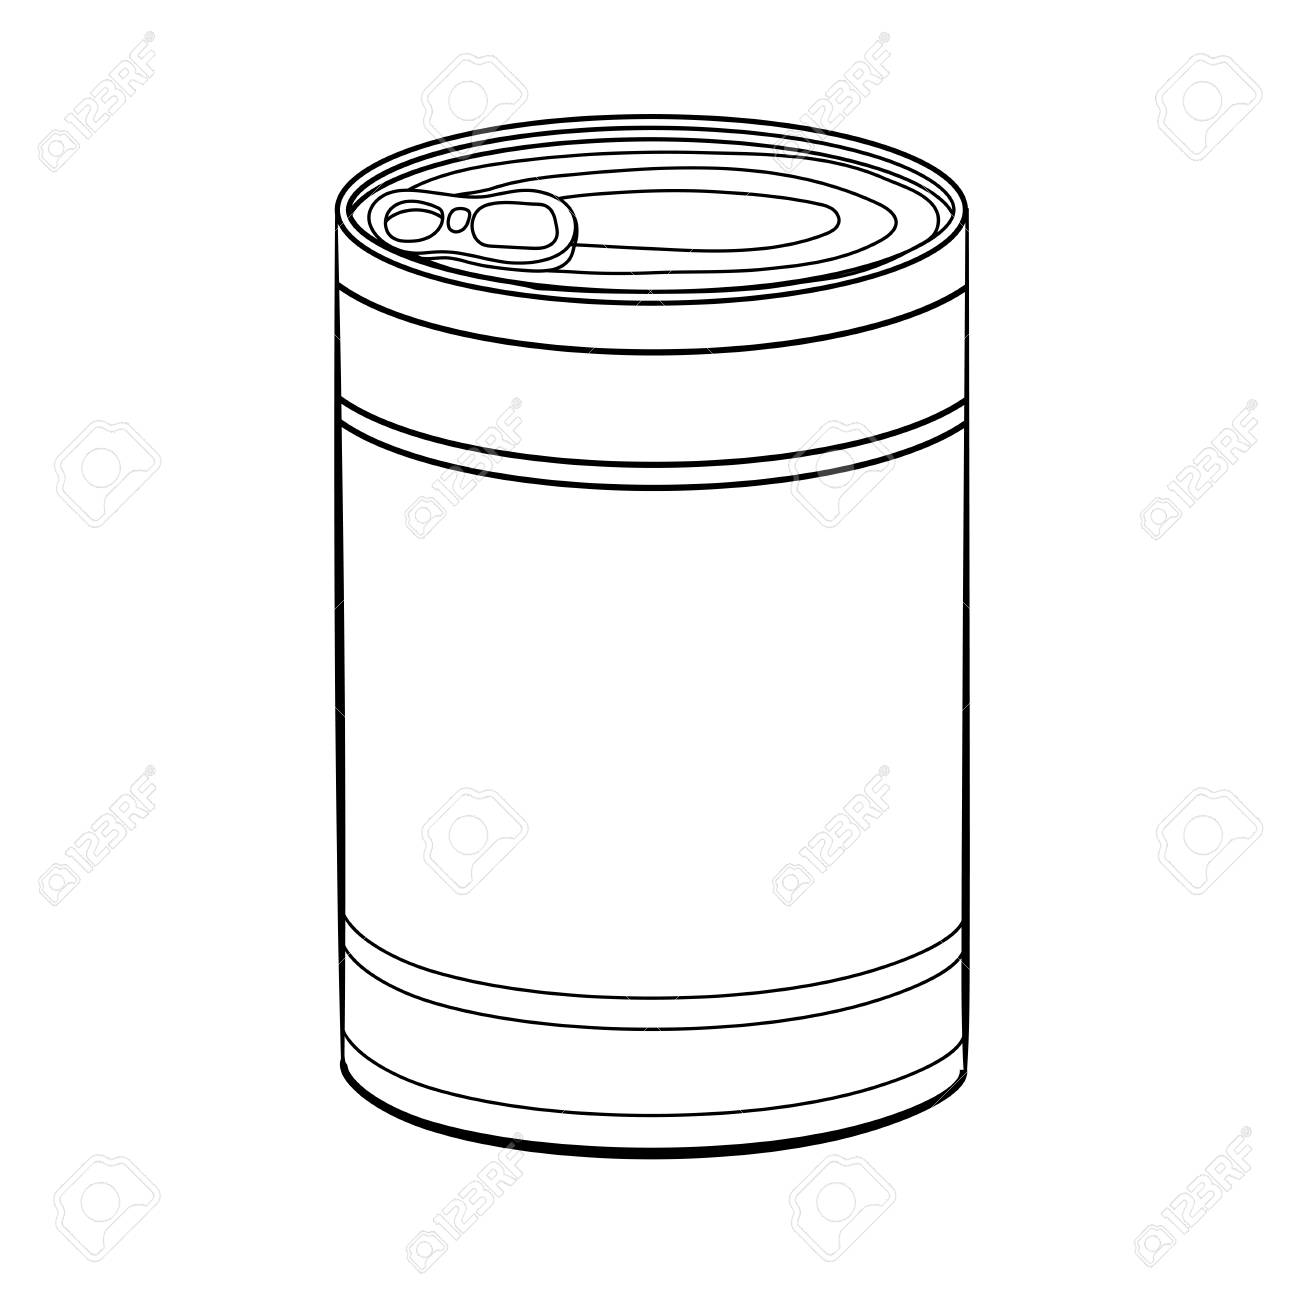 Hand drawn sketch of Food Can isolated, Black and White simple...